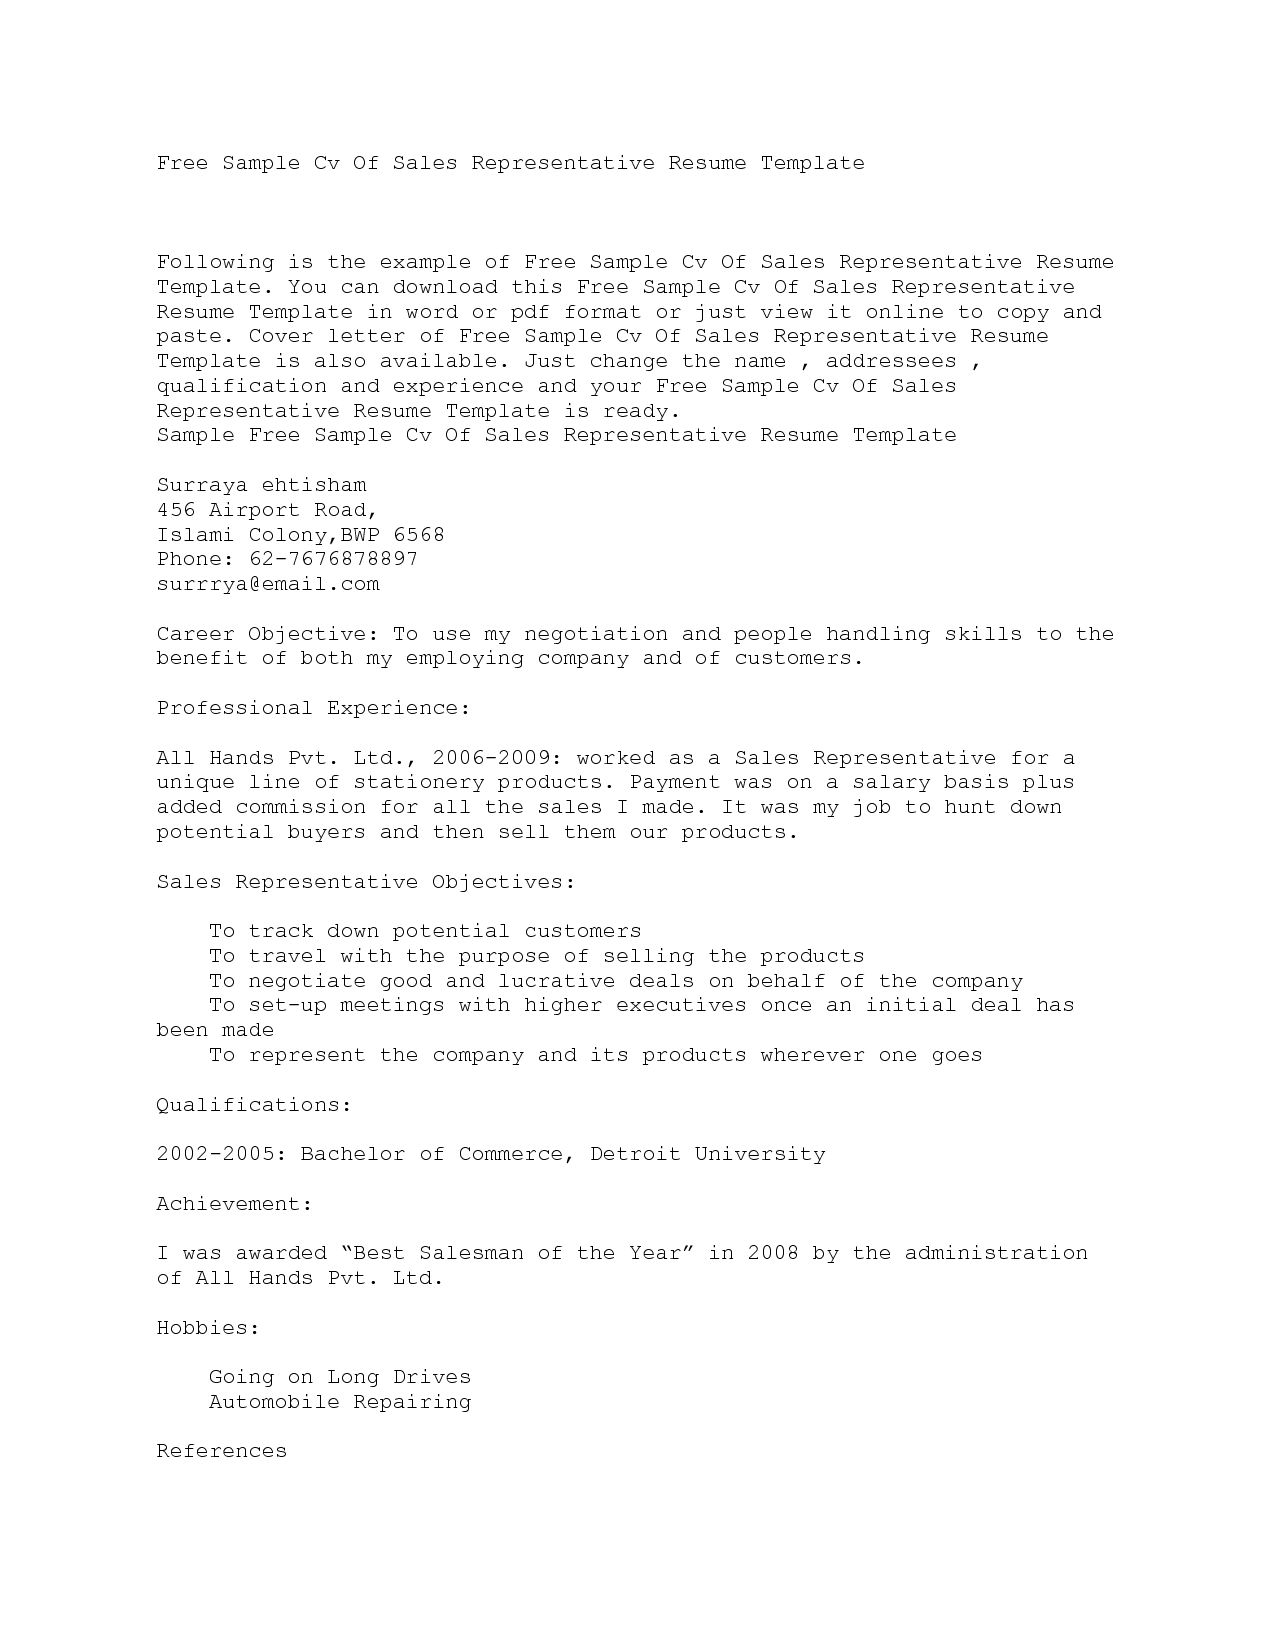 Cover Letter Template Copy And Paste Resume template